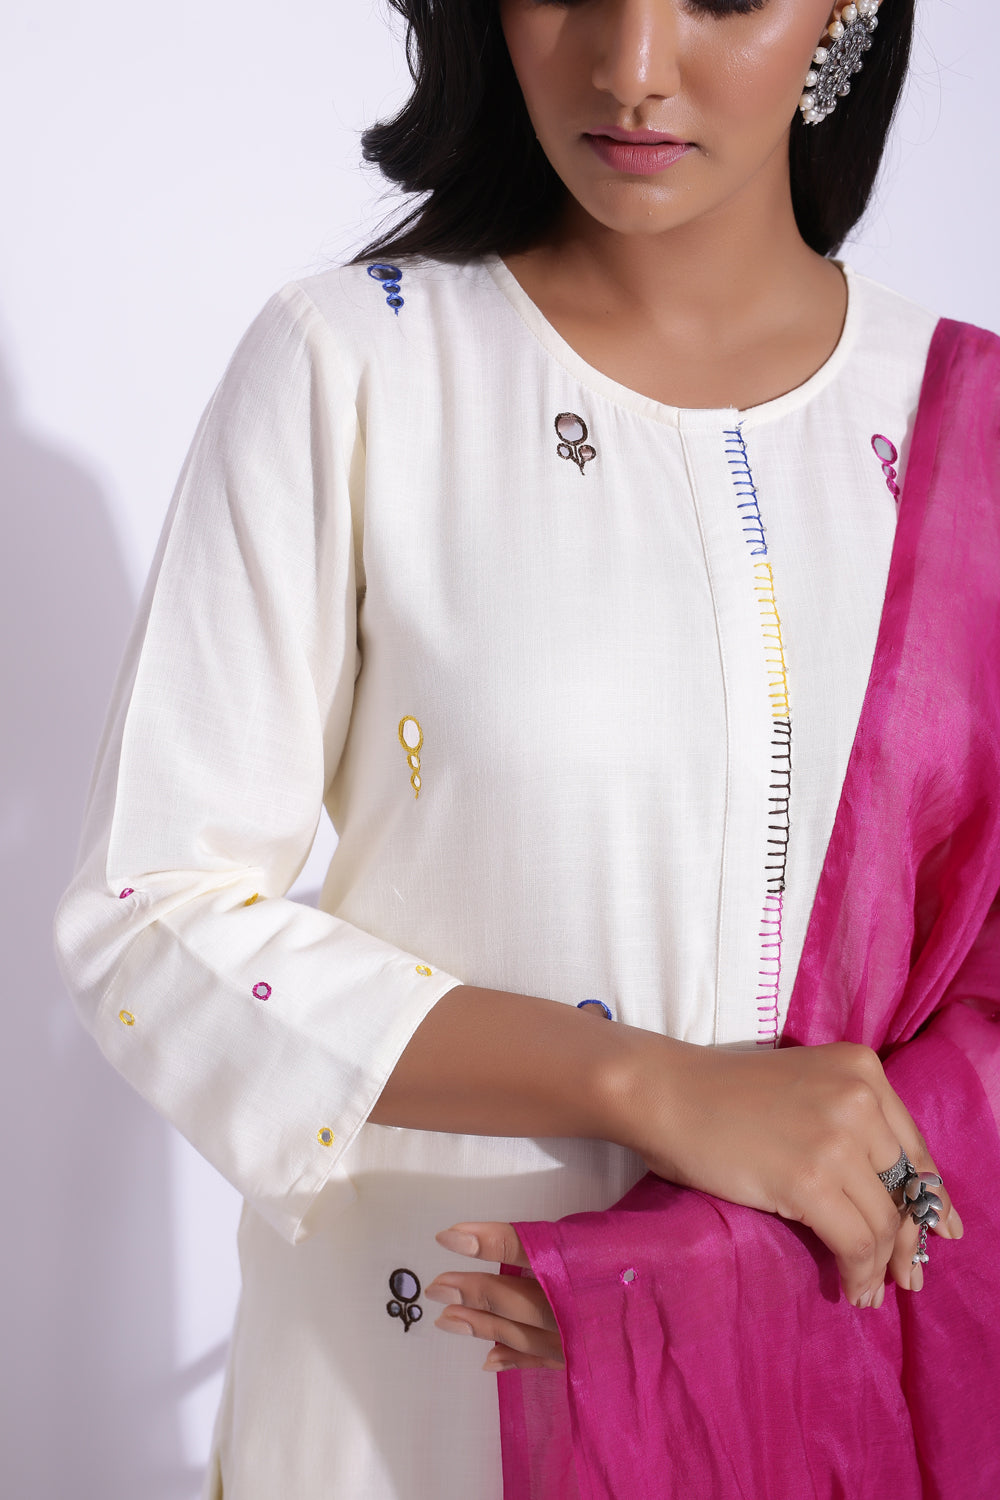 OFF WHITE COLOUR MIRROR WORK DETAILING KURTA SET - 3